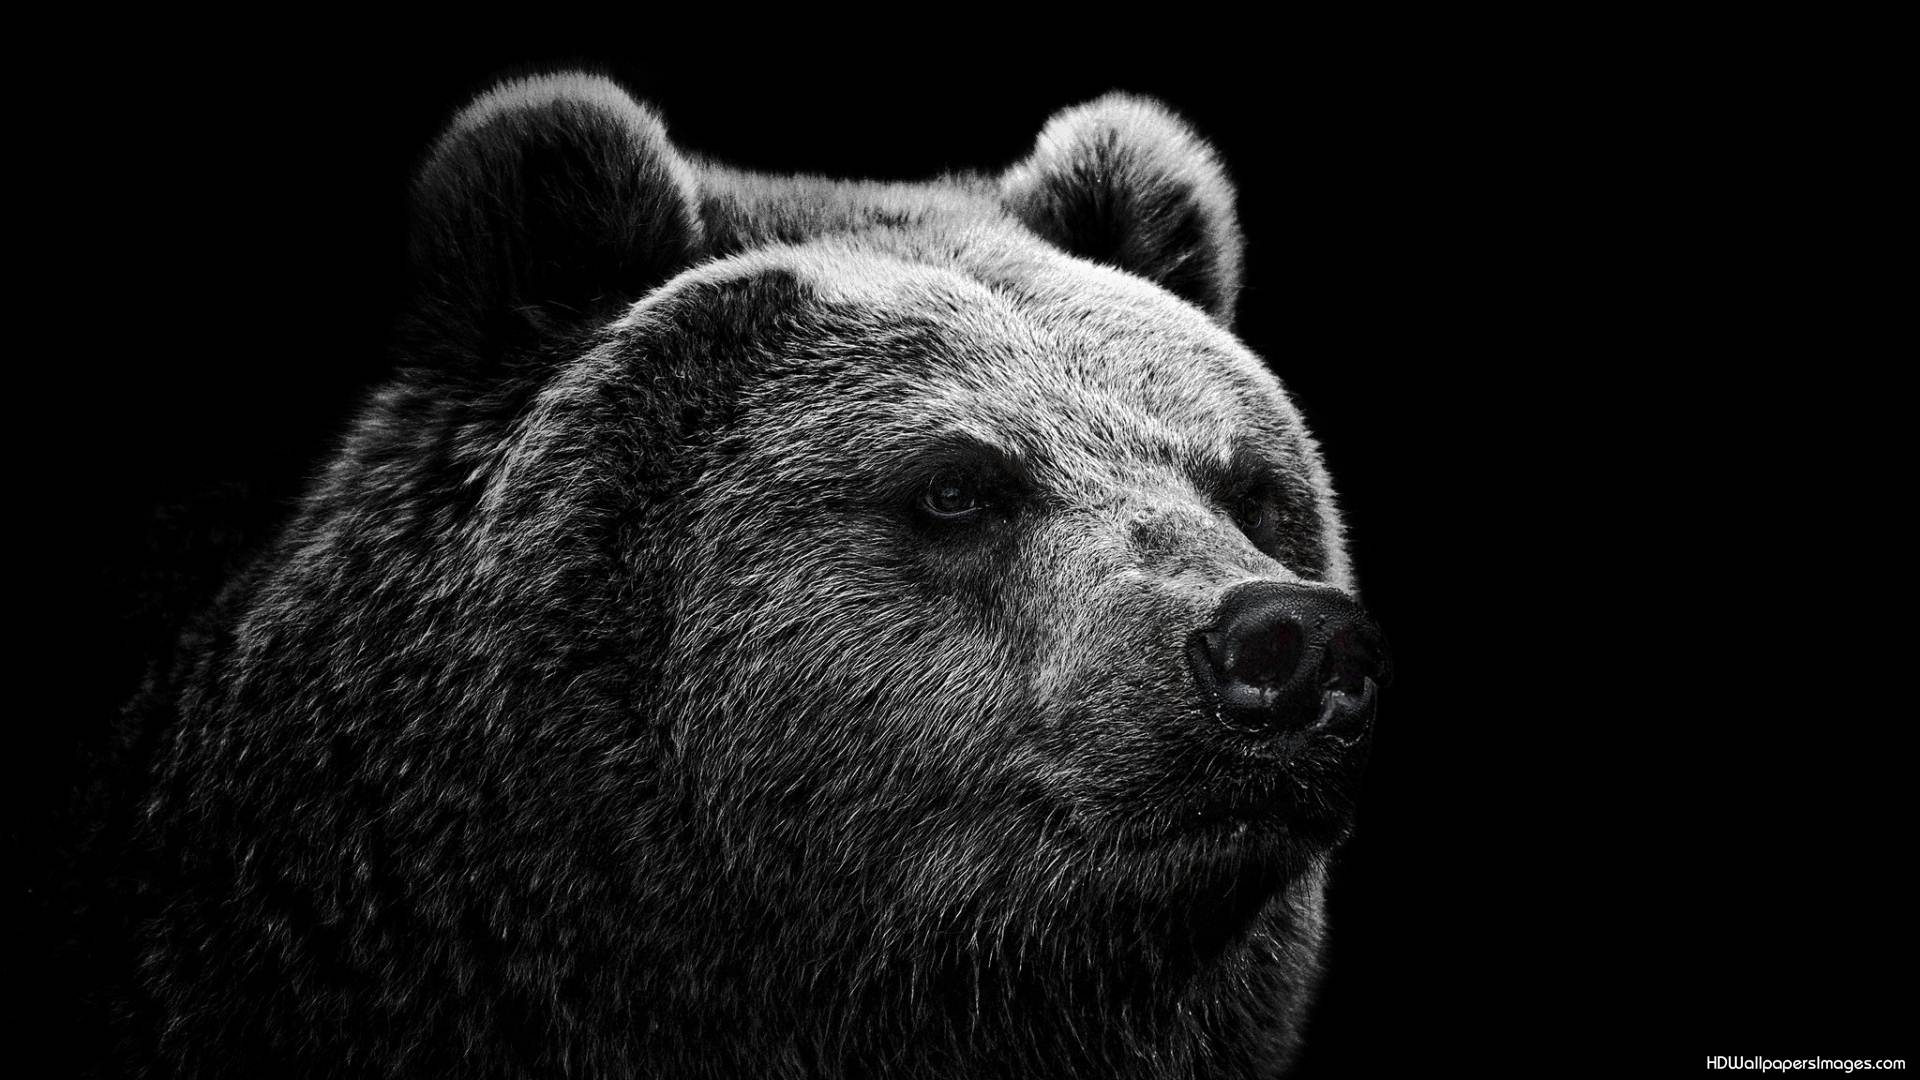 Black And White Bear : Free black bear wallpapers wallpaper cave